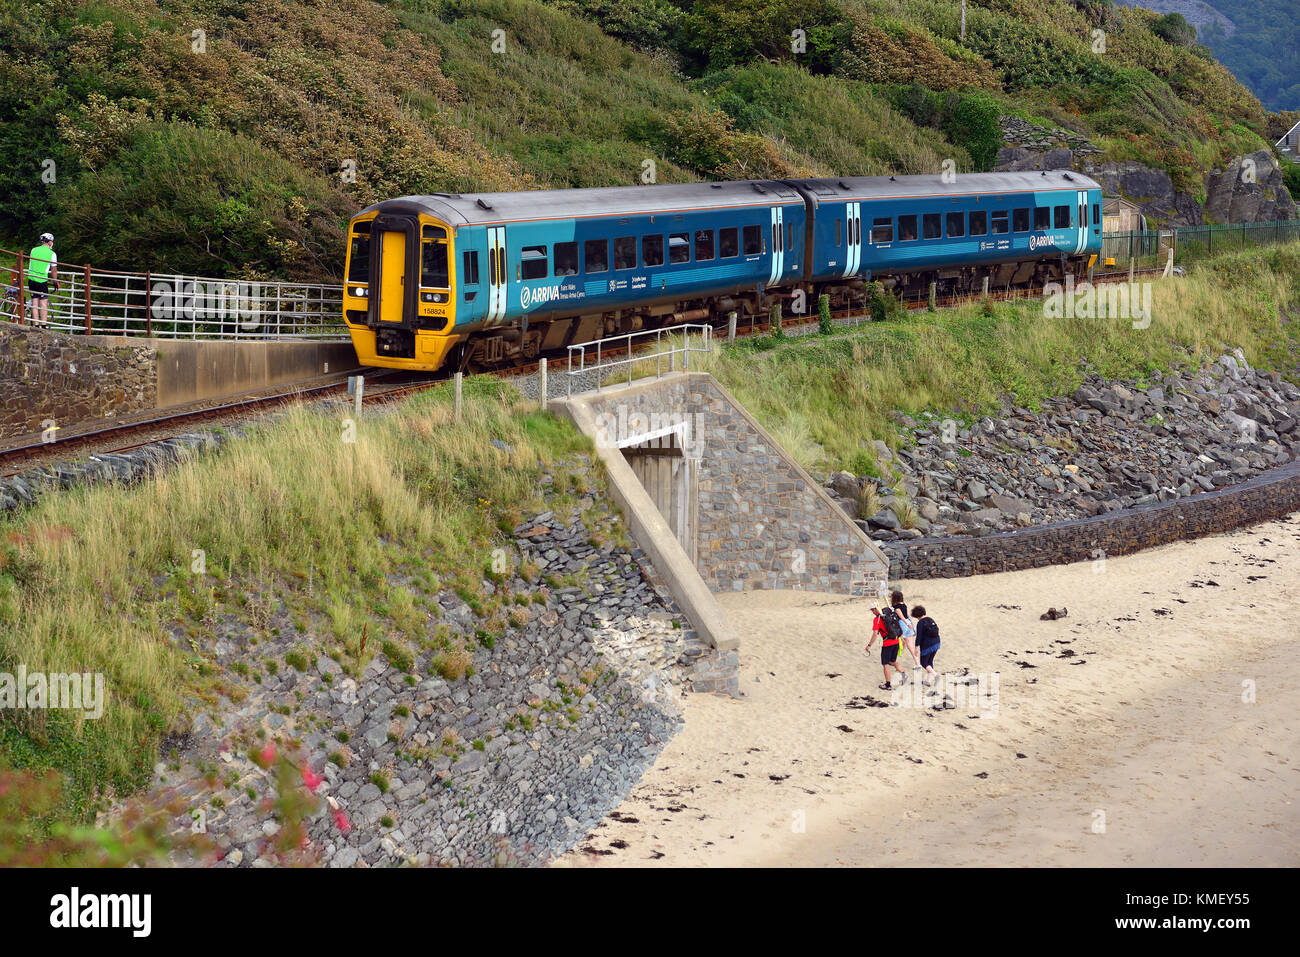 Railway bridge over the Afon Mawddach at Barmouth, Gwynedd, Wales, UK Stock Photo